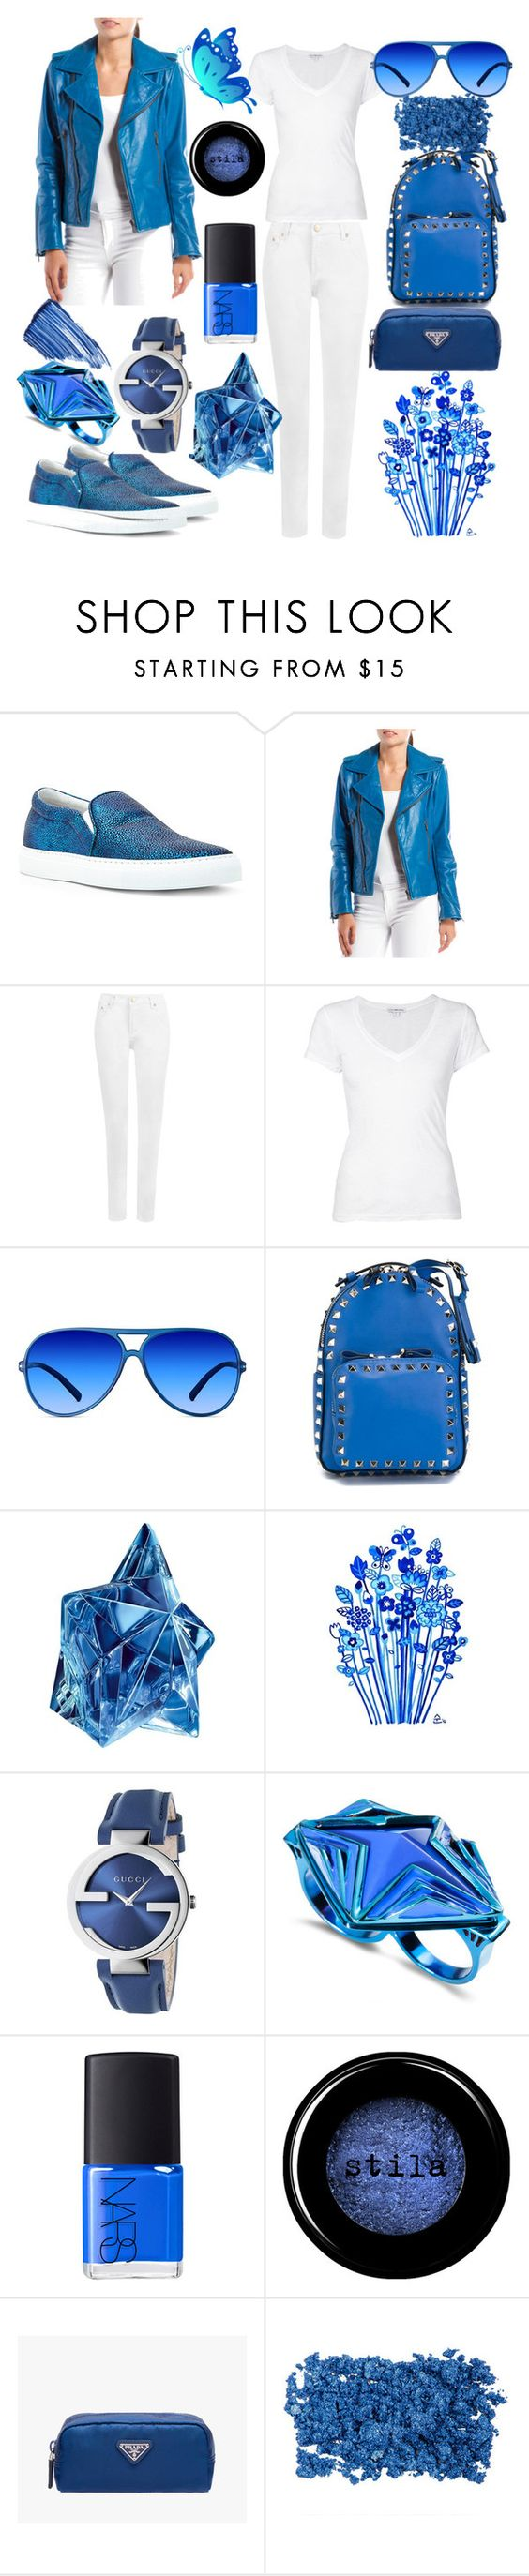 Outfit #104 by sofi6277 on Polyvore featuring James Perse, Balenciaga, WearAll, Joshua's, Valentino, Gucci, Eddie Borgo, X-Ray, Stila and By Terry